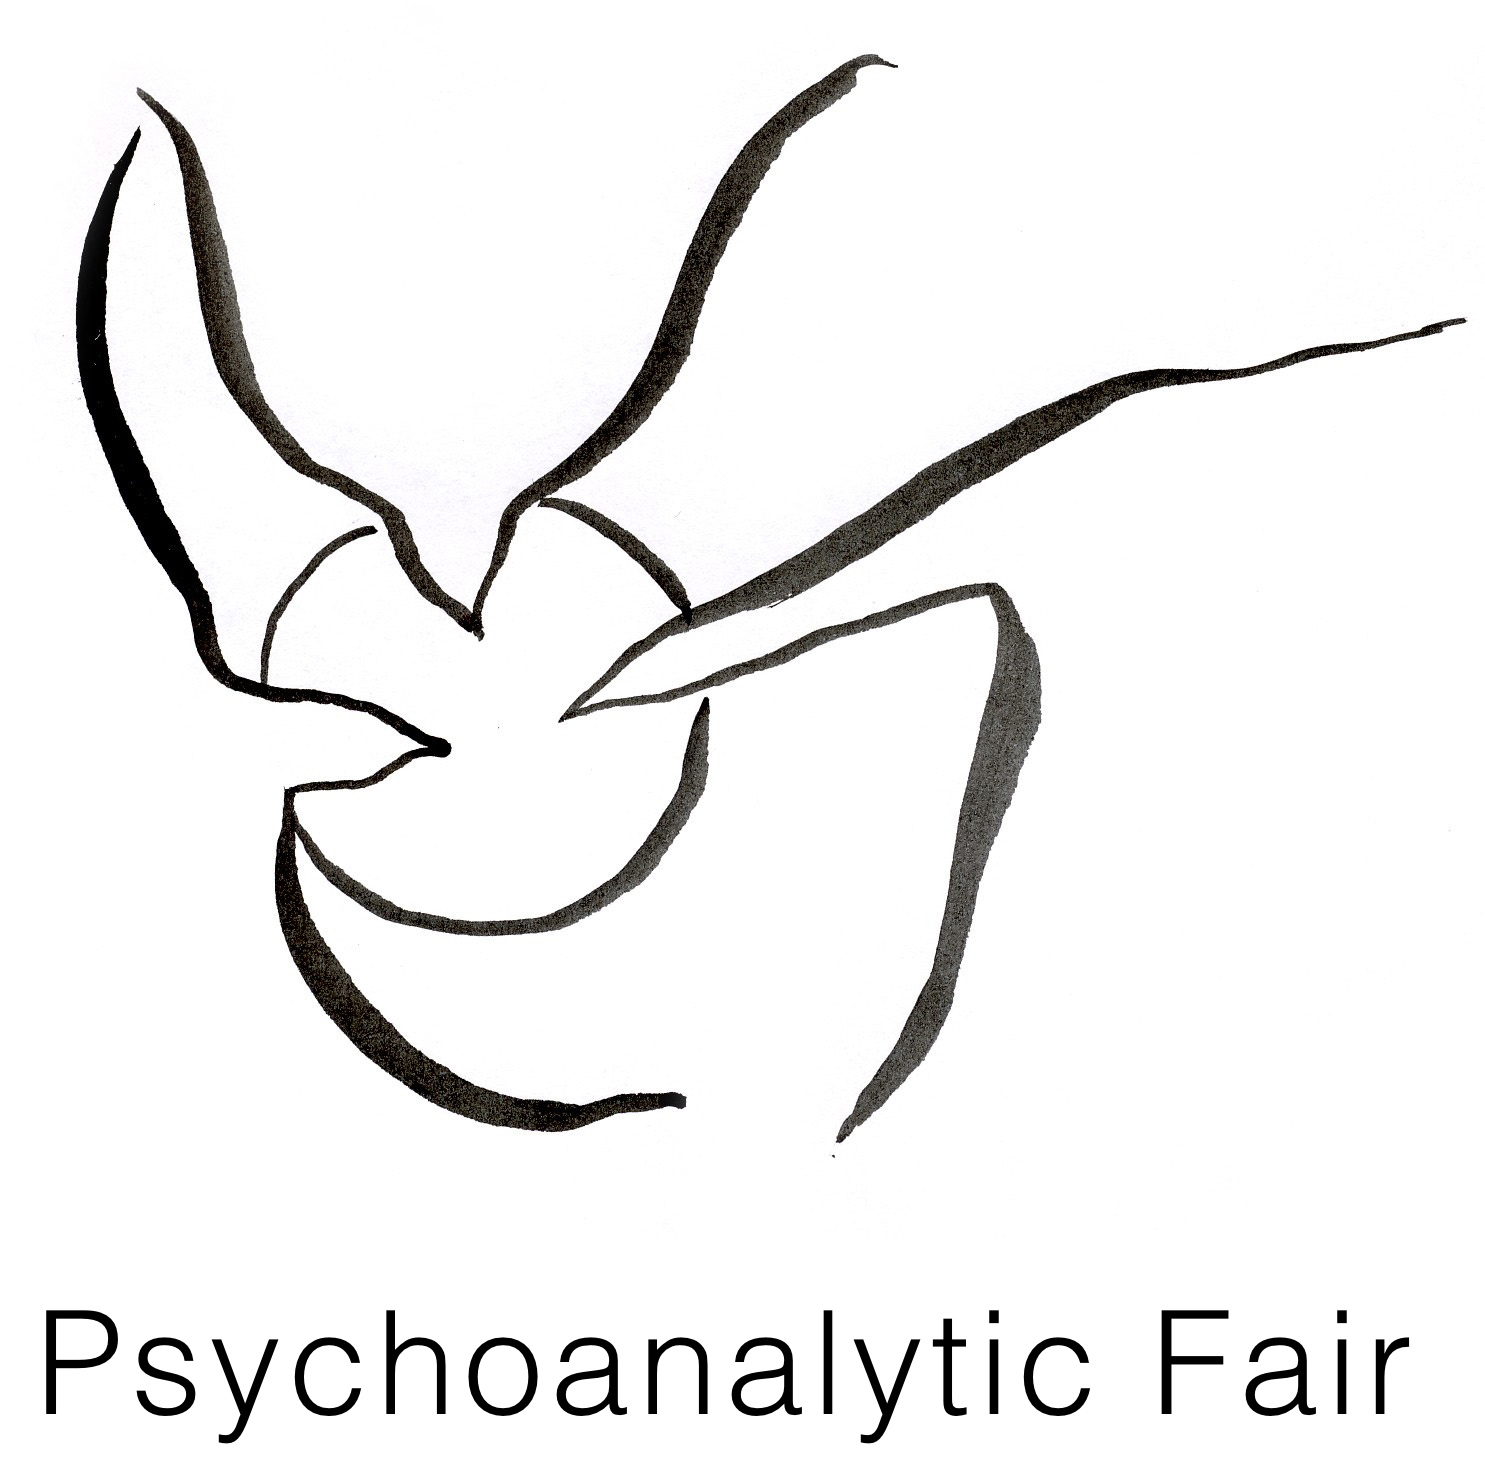 Psychoanalytic Fair